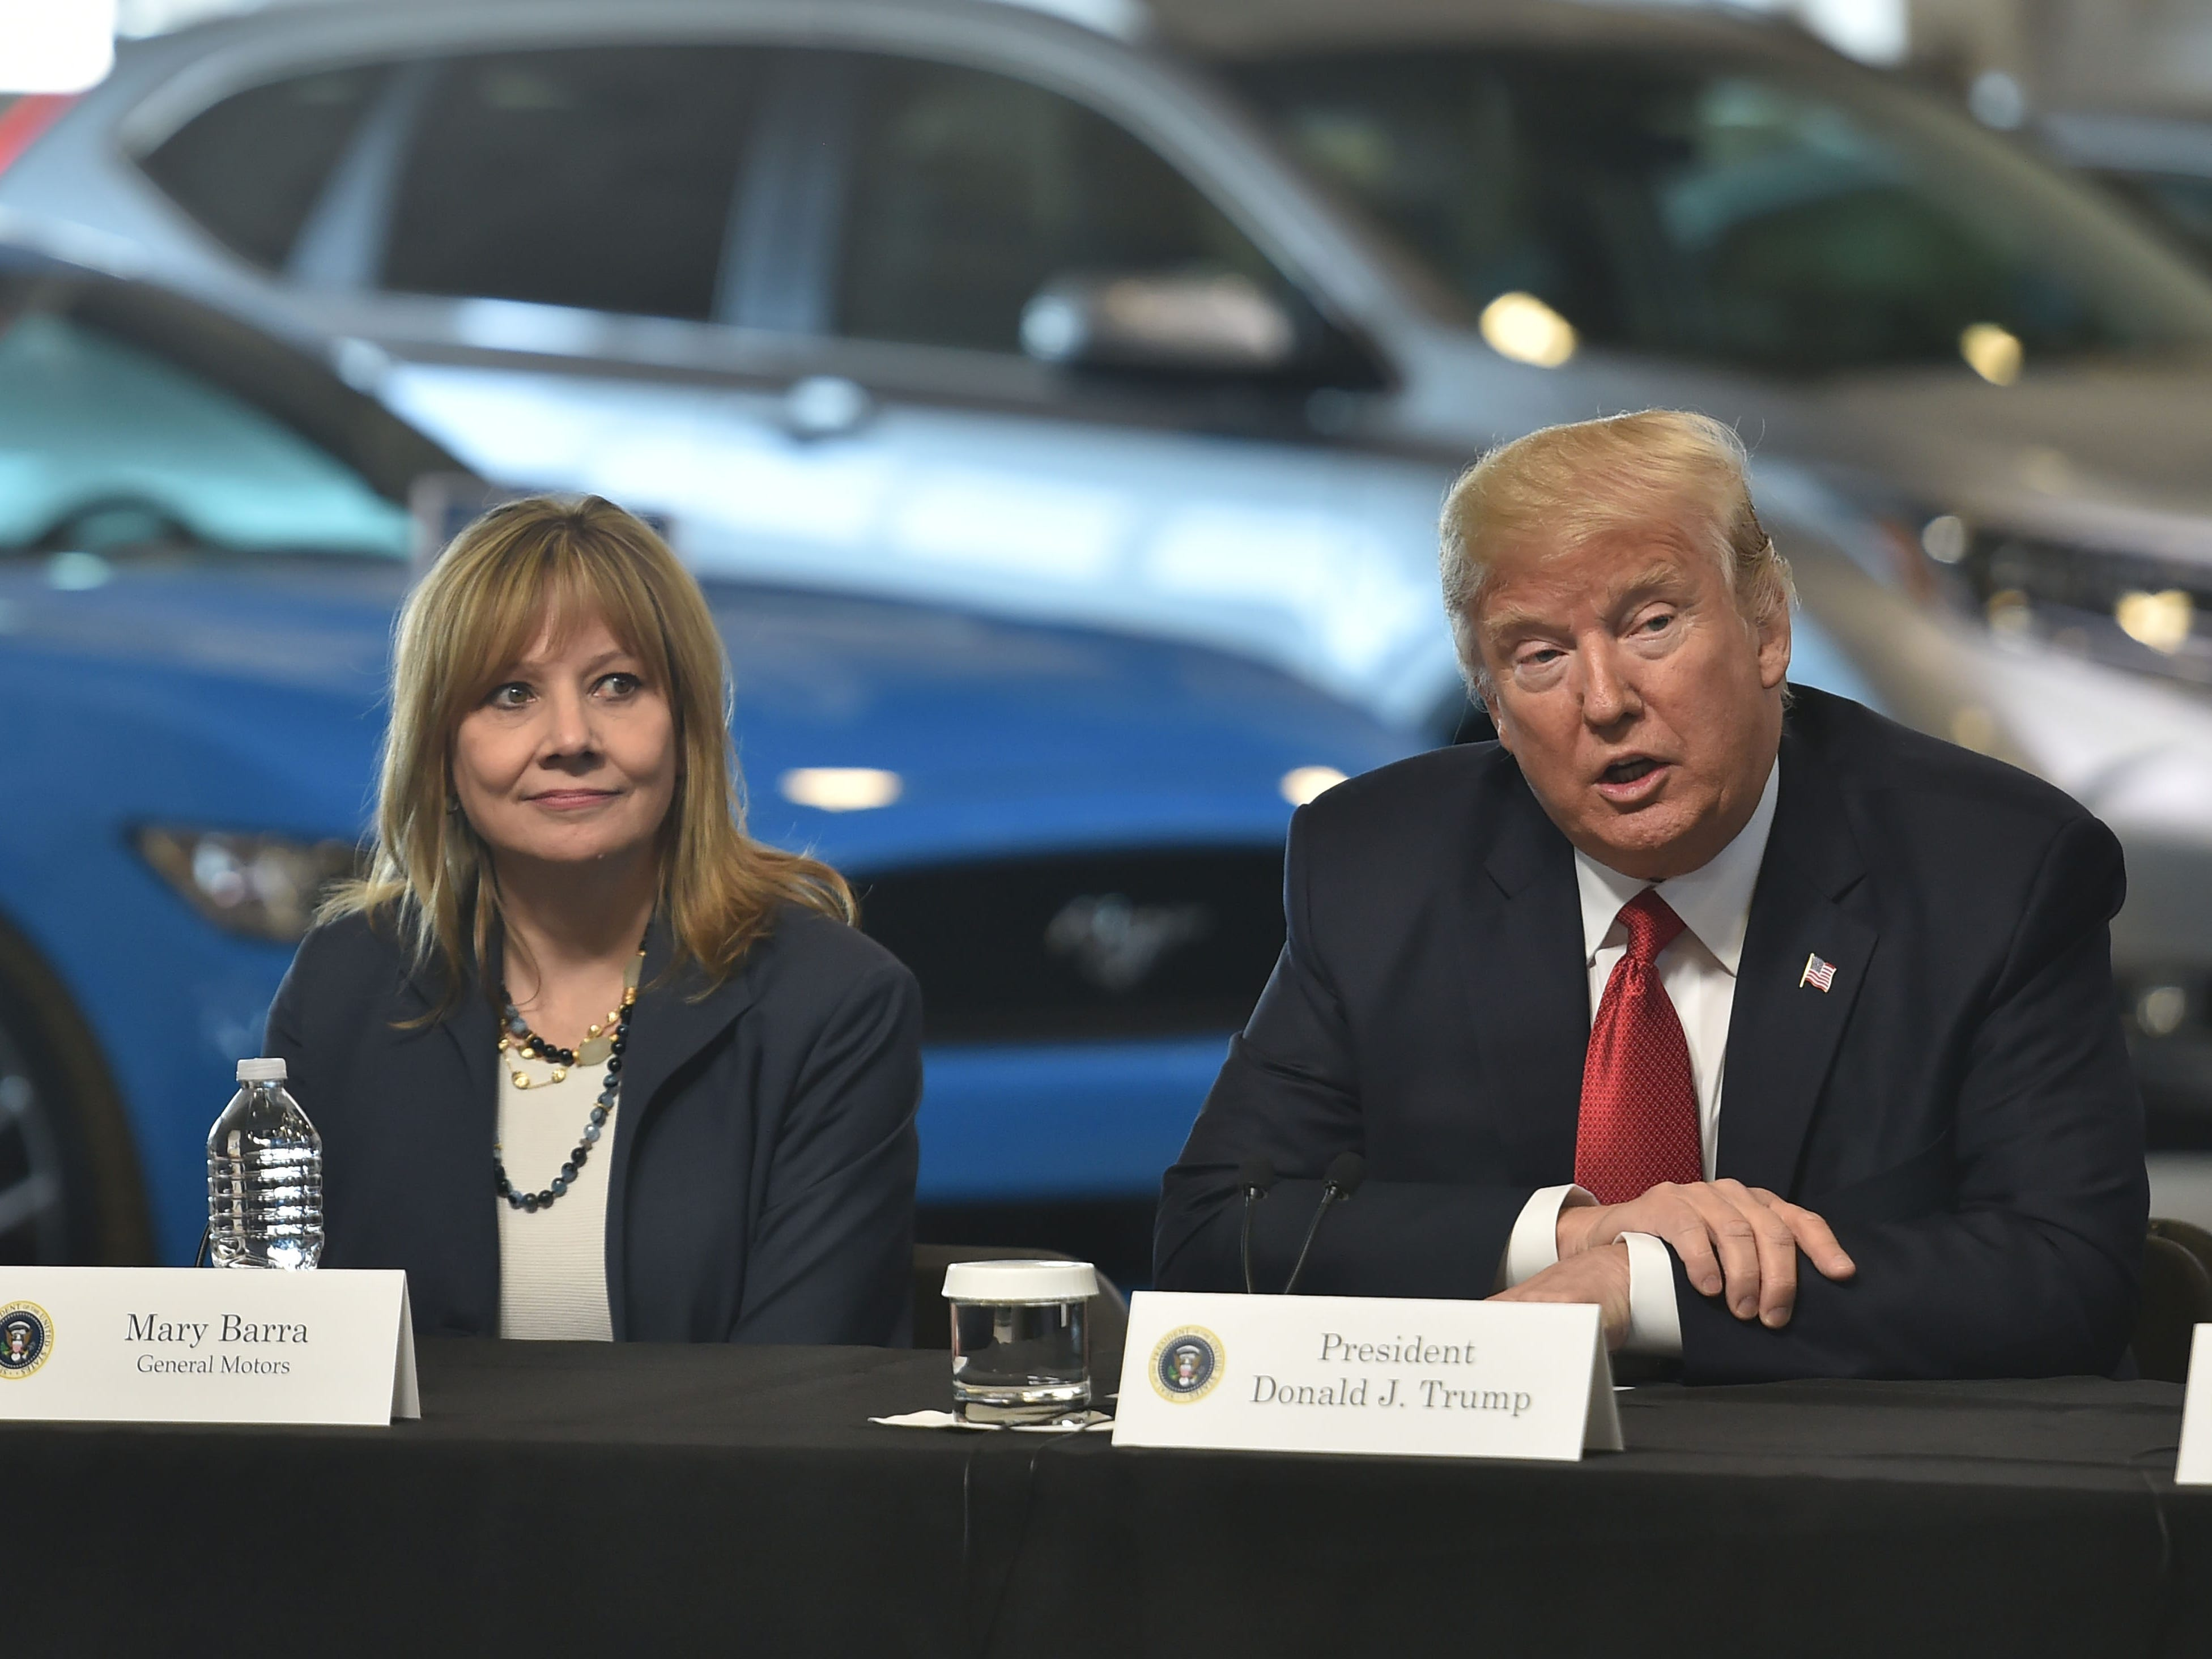 Folks are angry at GM, Mary Barra, but GM can't afford to be bothered